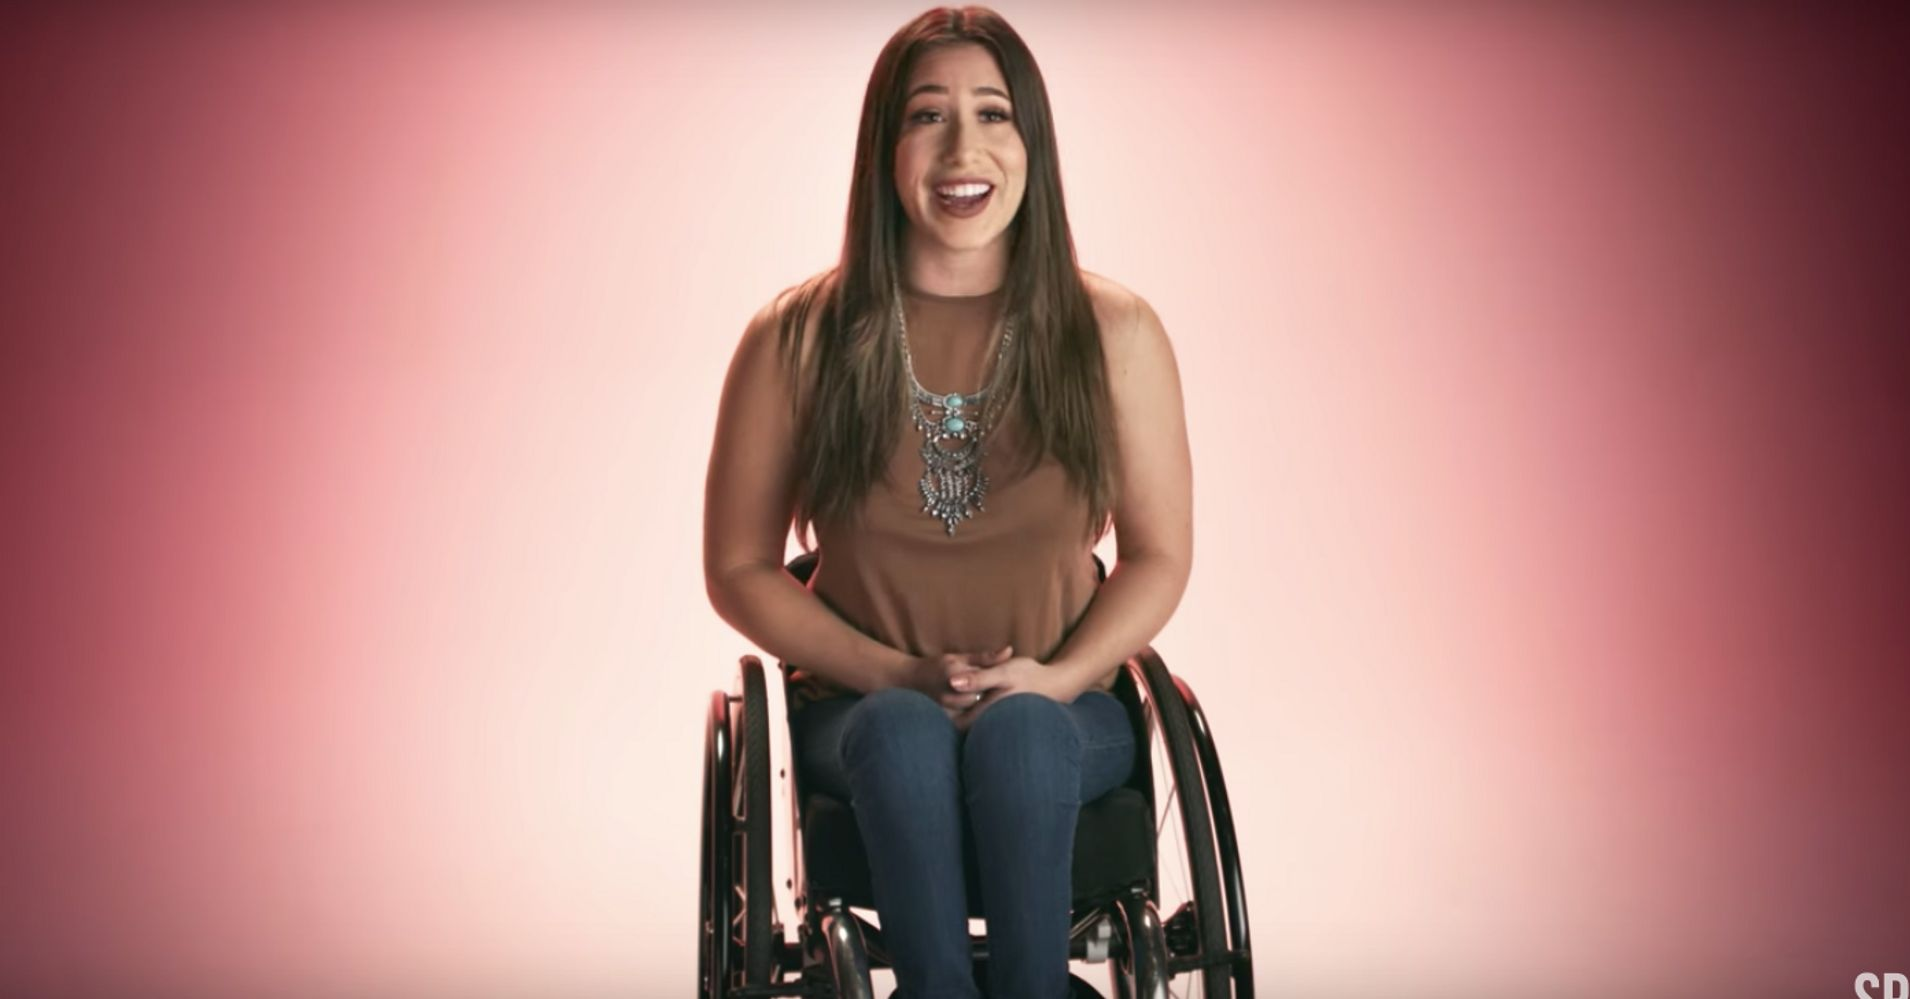 Here's What People With Disabilities Want You To Know